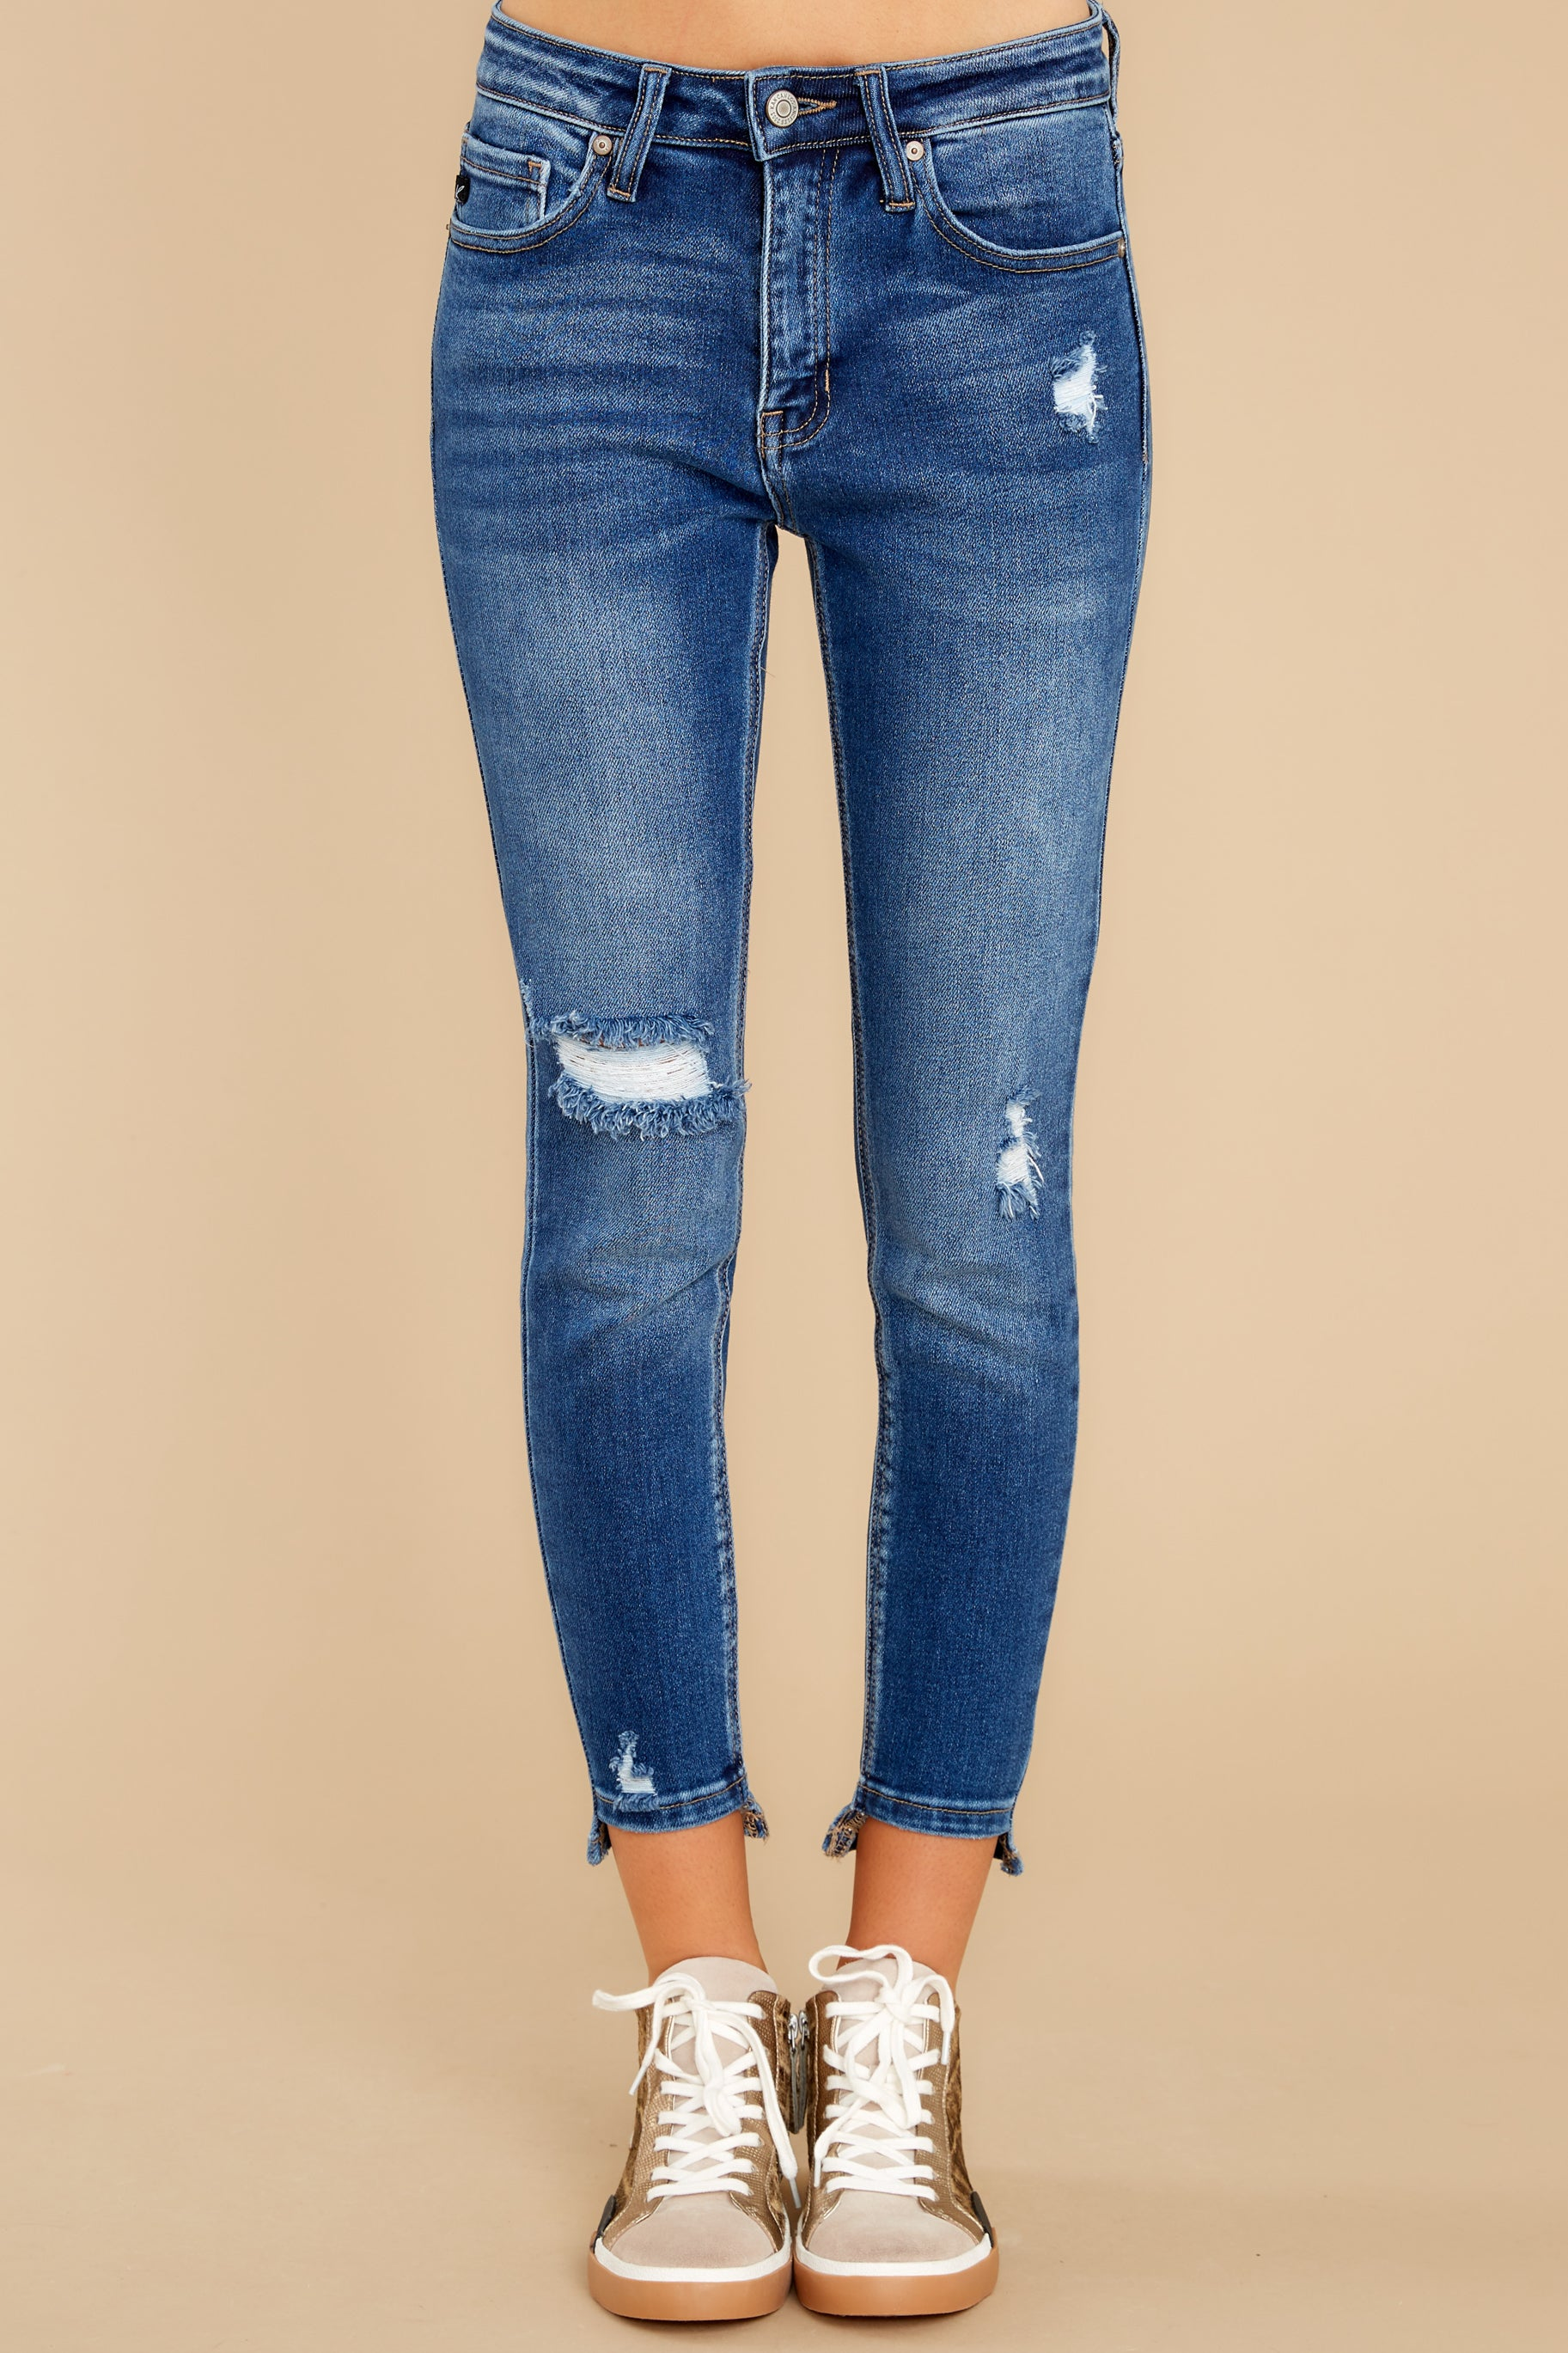 2 Last To Know Medium Wash Distressed Skinny Jeans at reddress.com